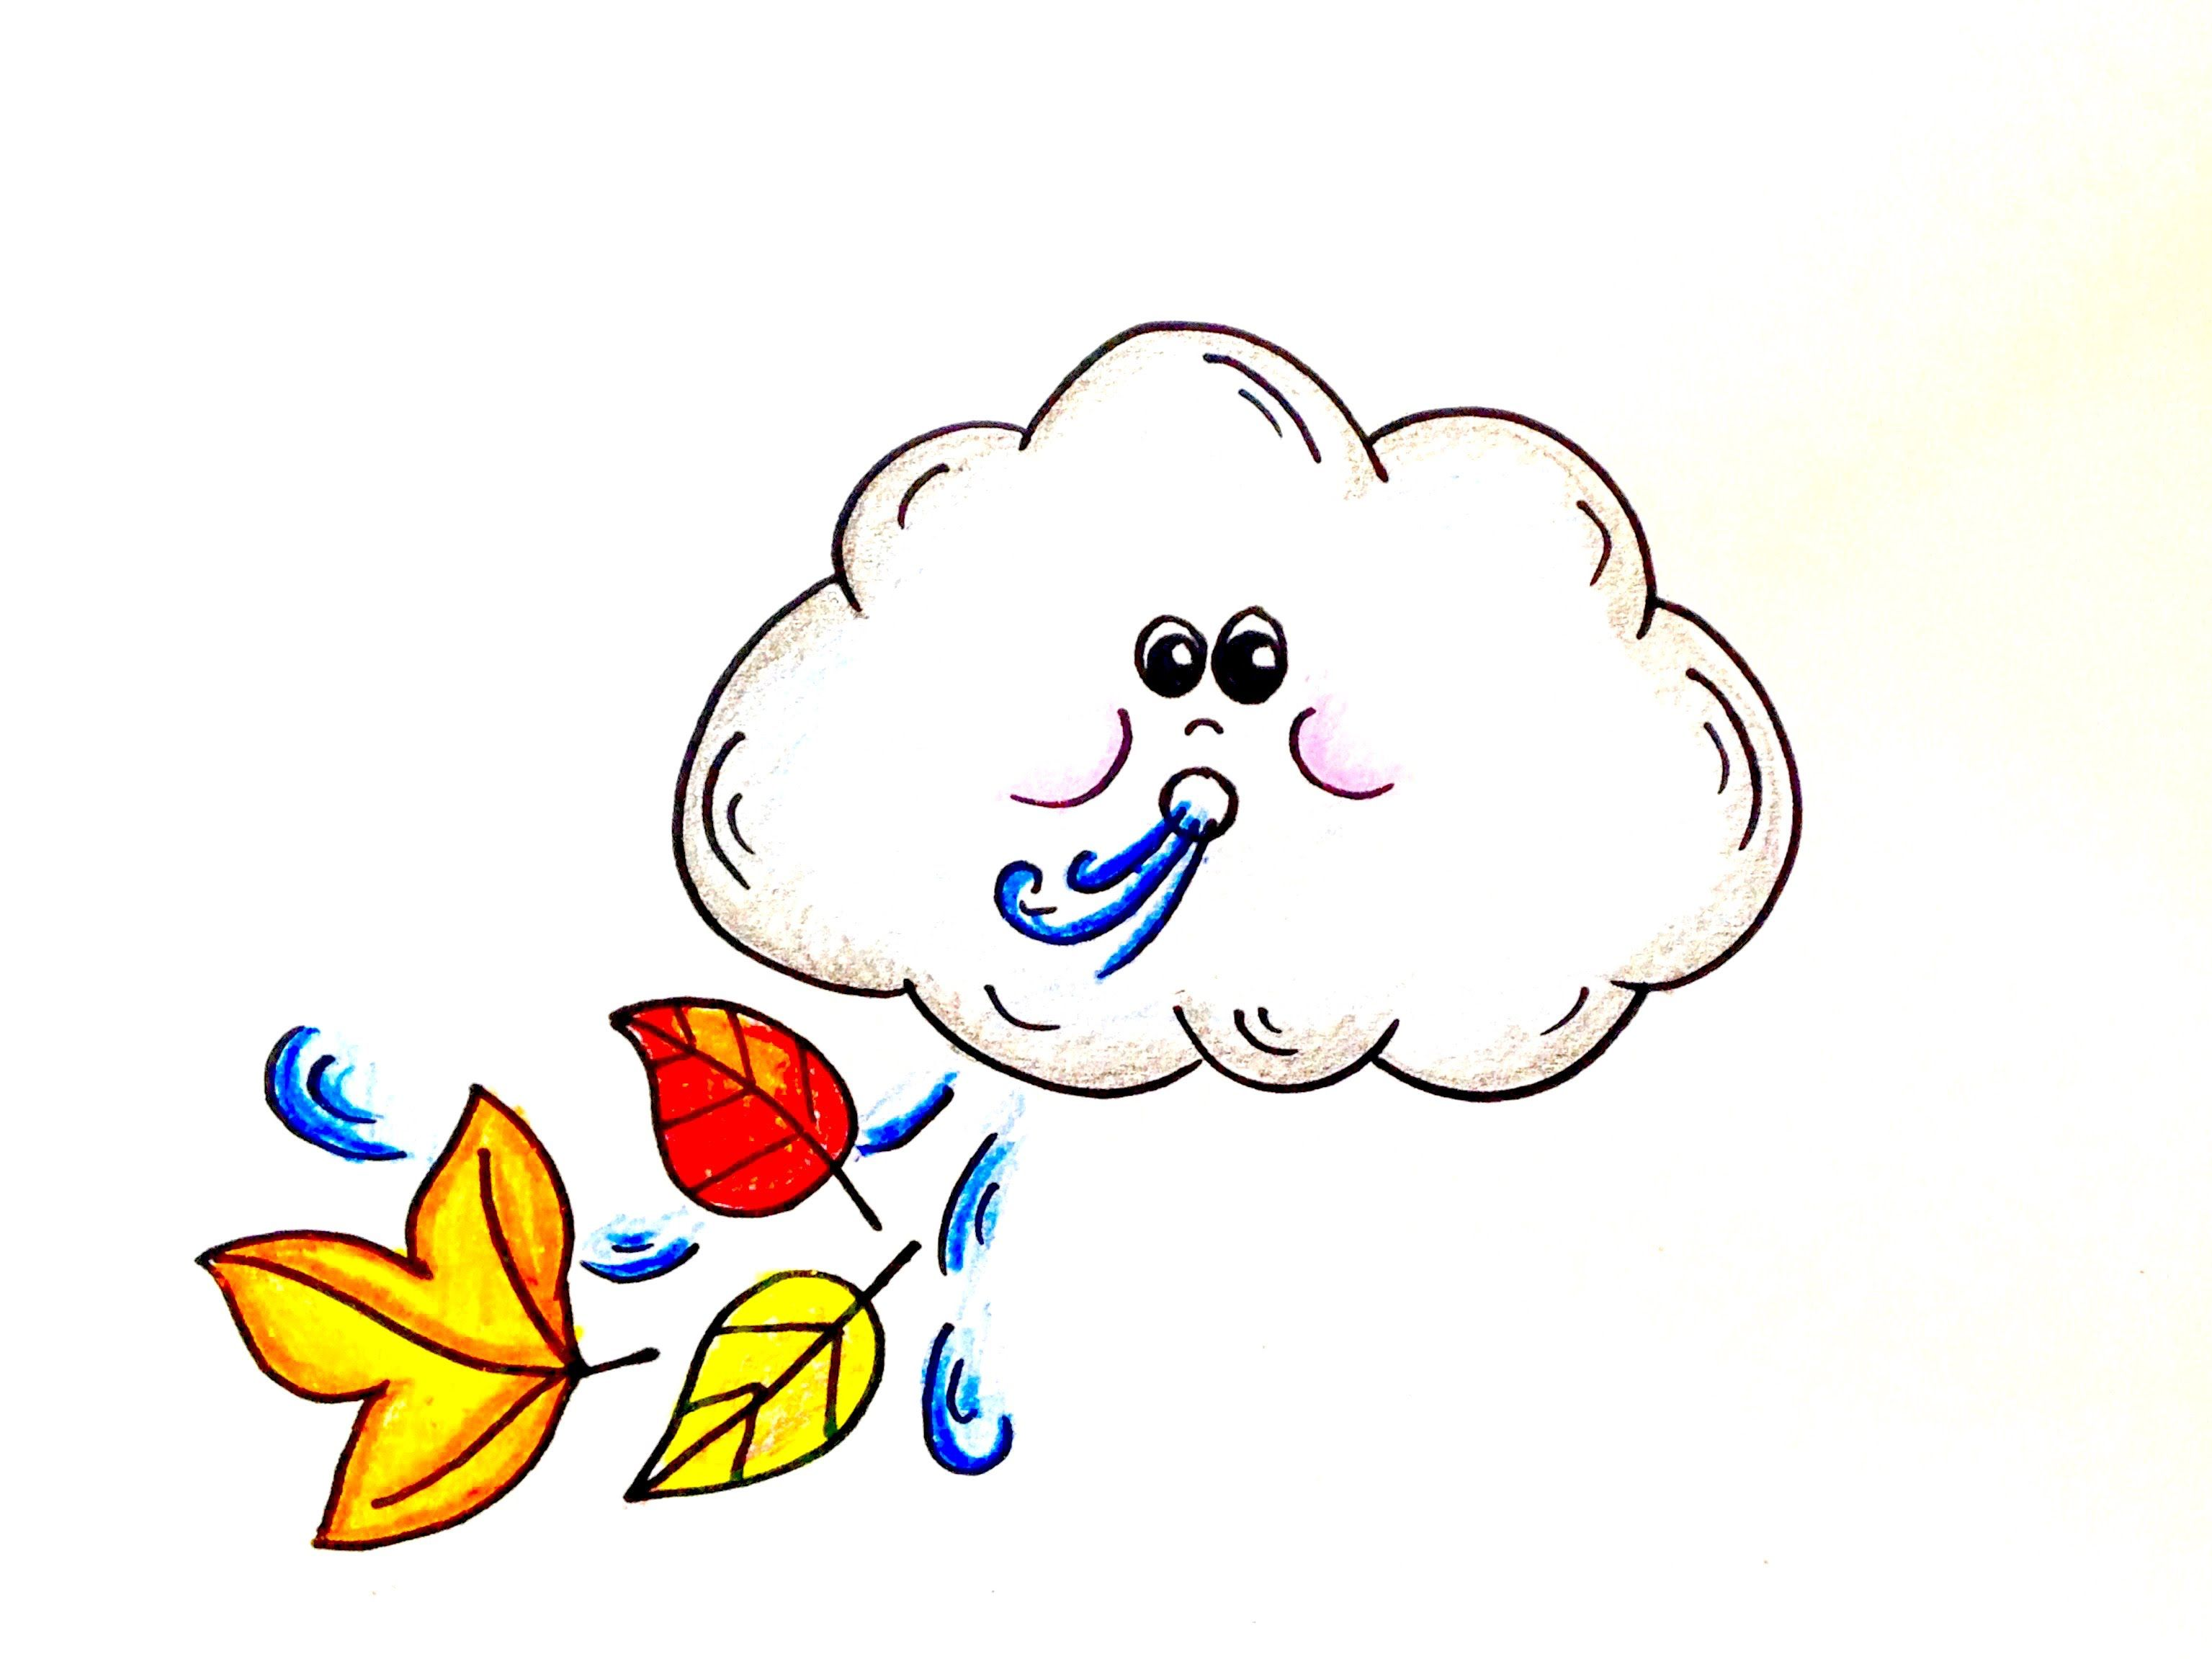 Paper to draw on with crayons clipart svg transparent stock Drawing Lesson: How to Draw a Windy Day Cloud. Grab paper ... svg transparent stock